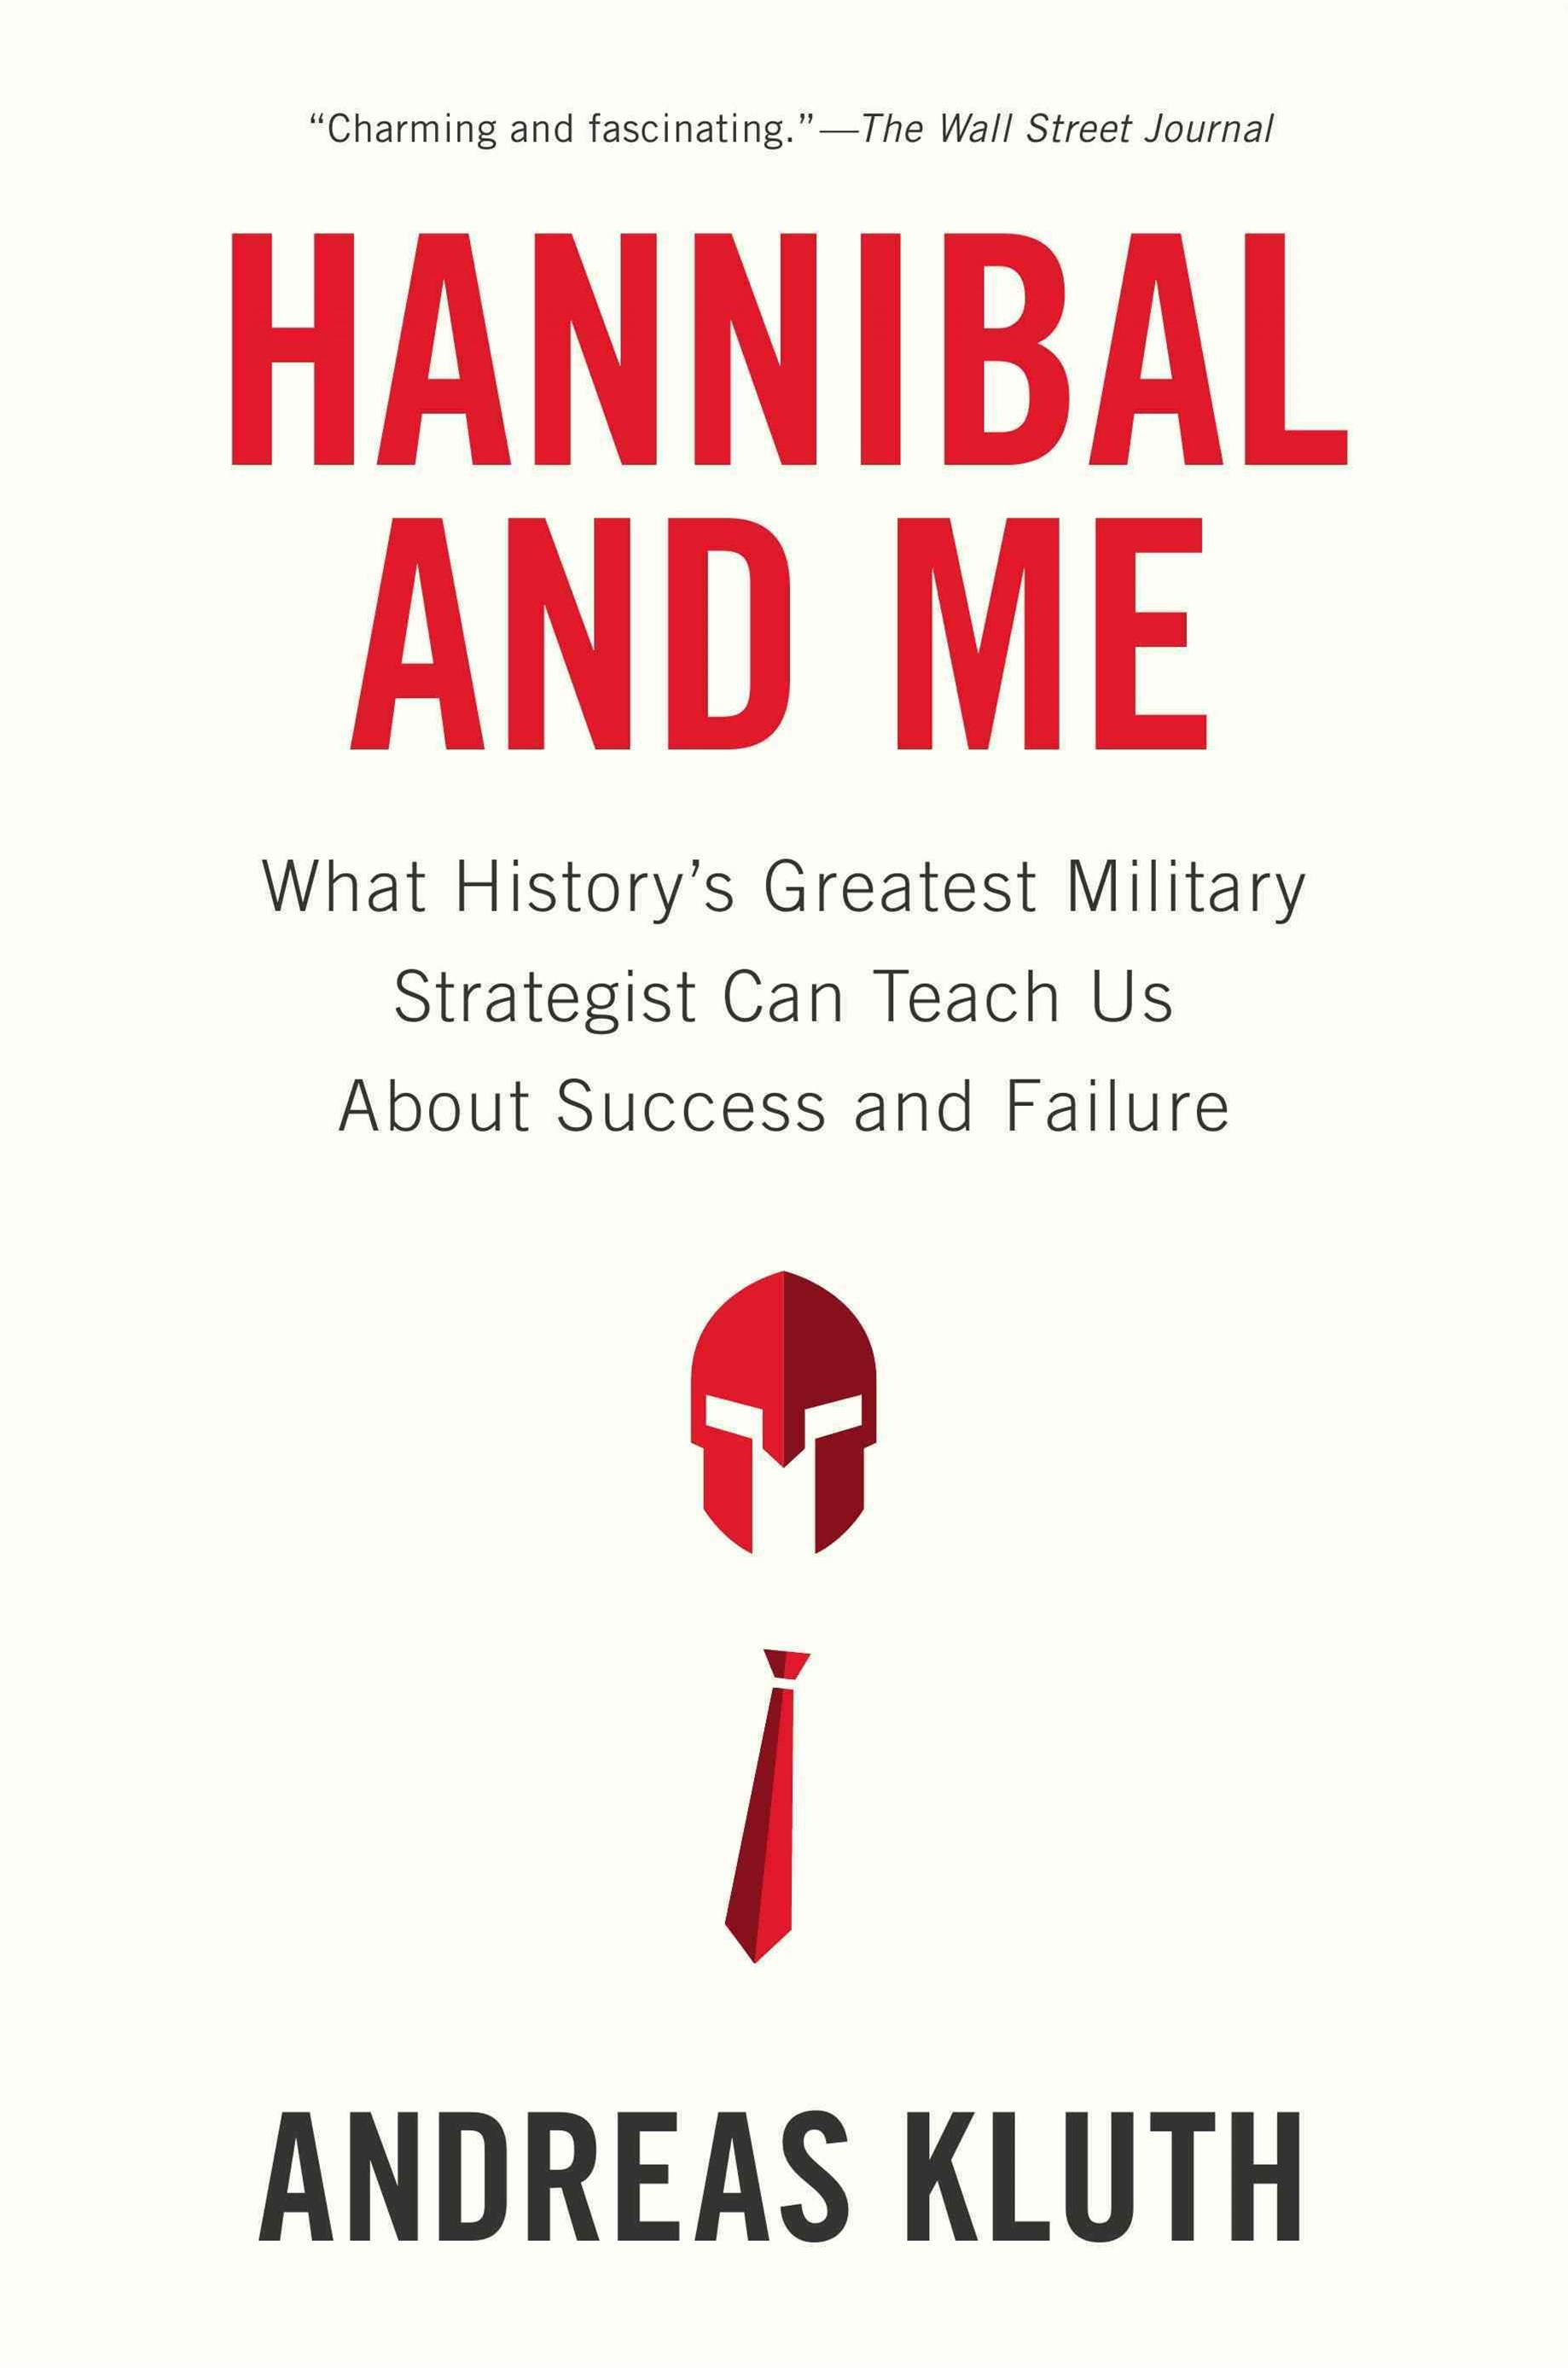 Hannibal and Me: What History's Greatest Military Strategist Can Teach Us About Success and Failure